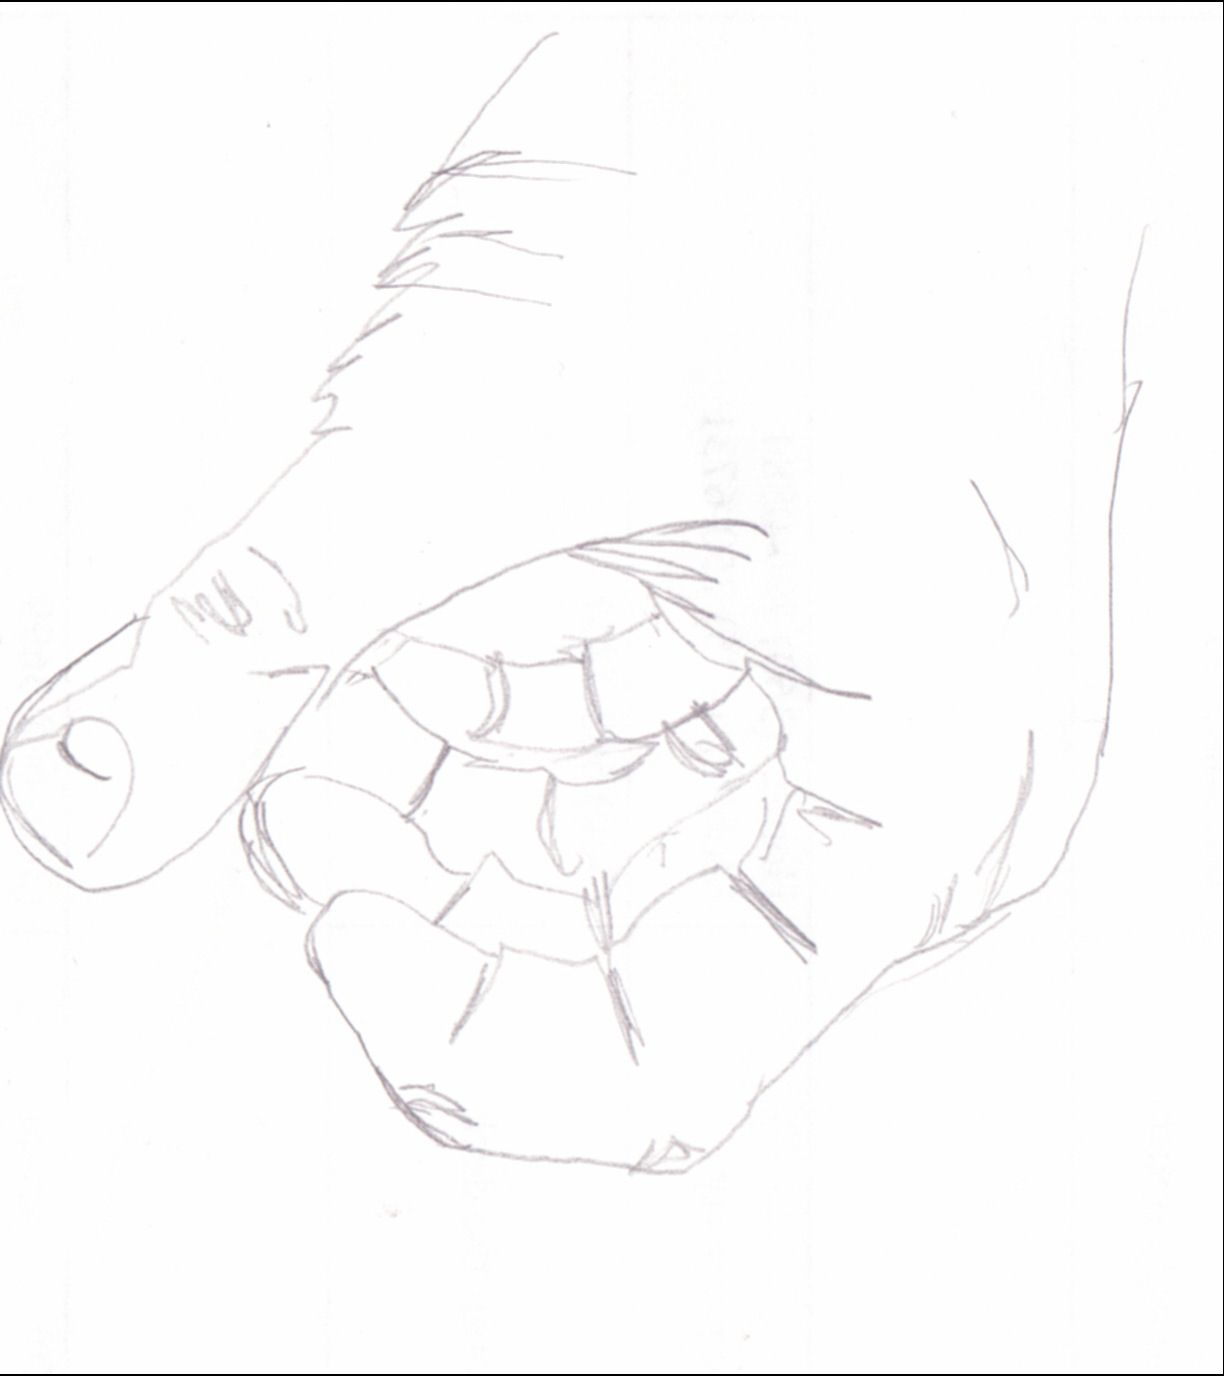 Blind Contour Line Drawing Exercises : Blind contour drawing a classic exercise